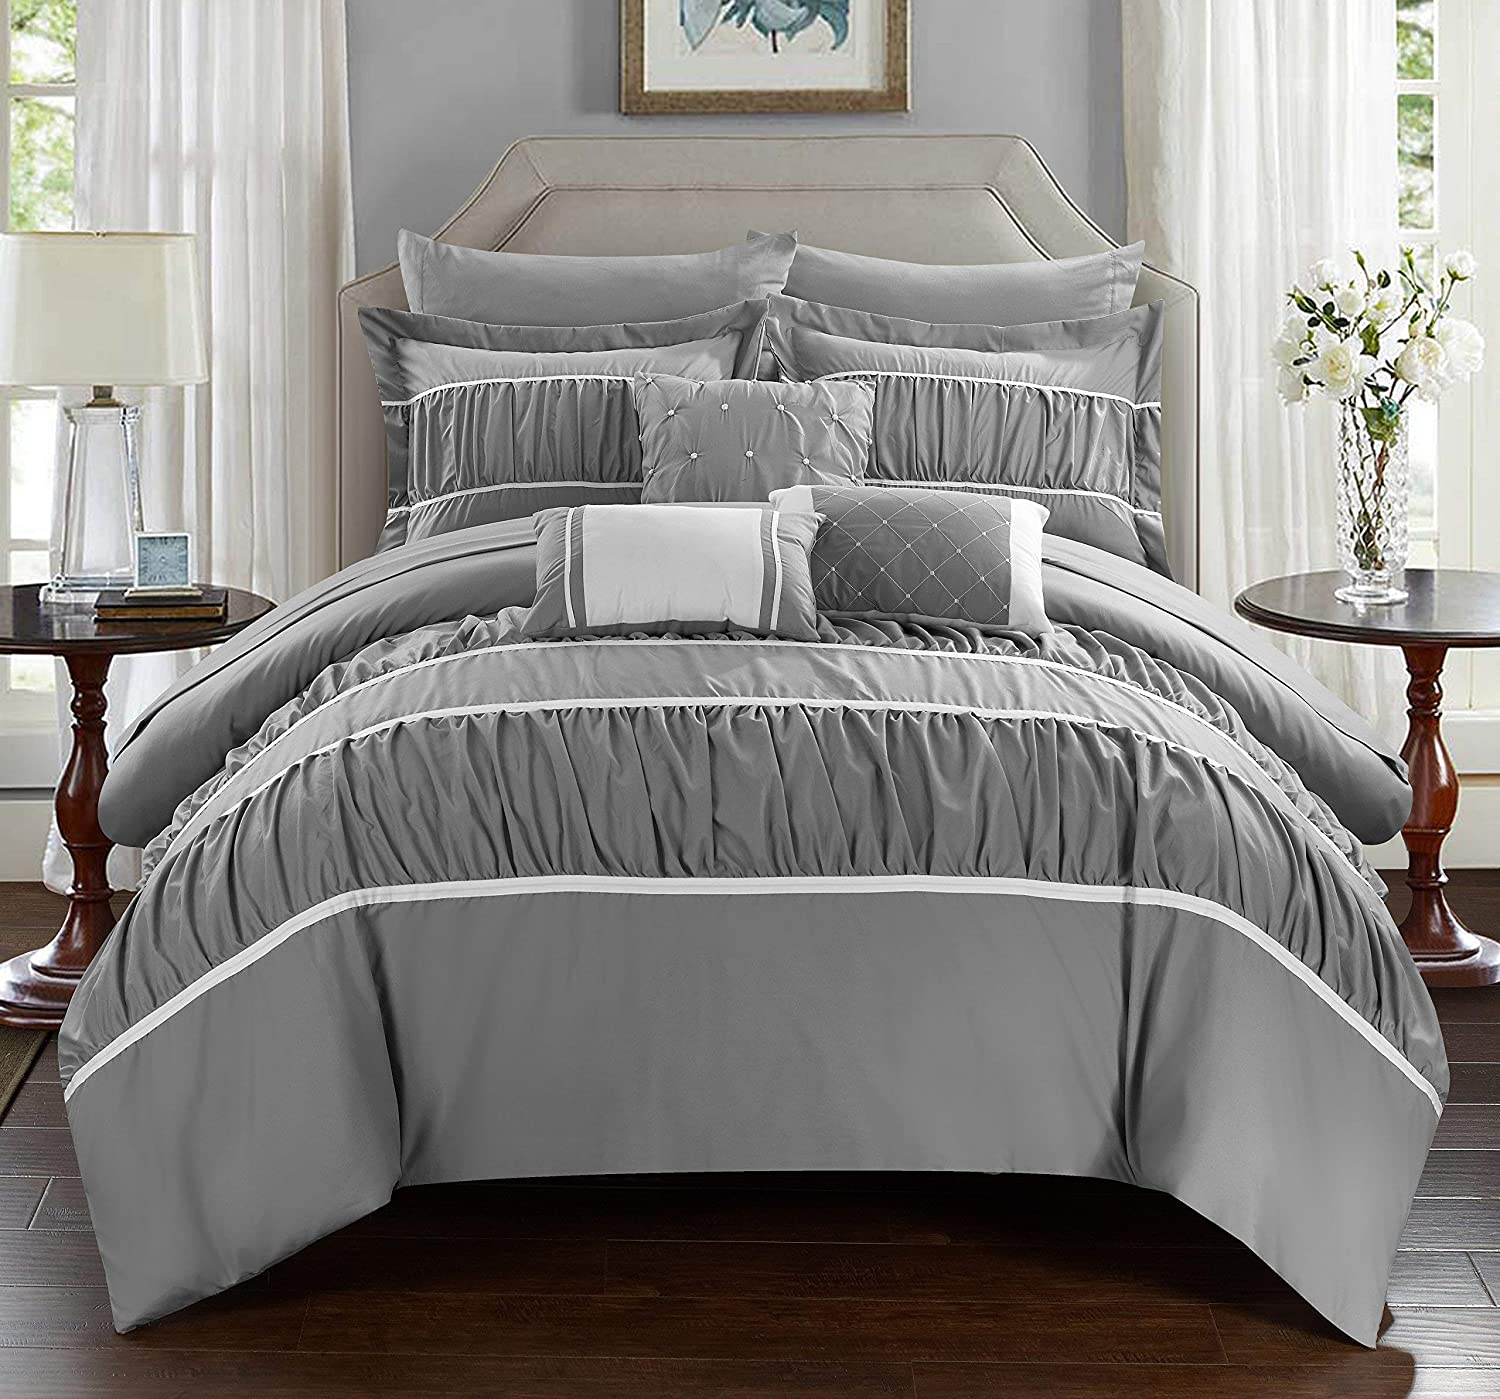 Chic Home CS2115-AN Cheryl Comforter, King, Grey